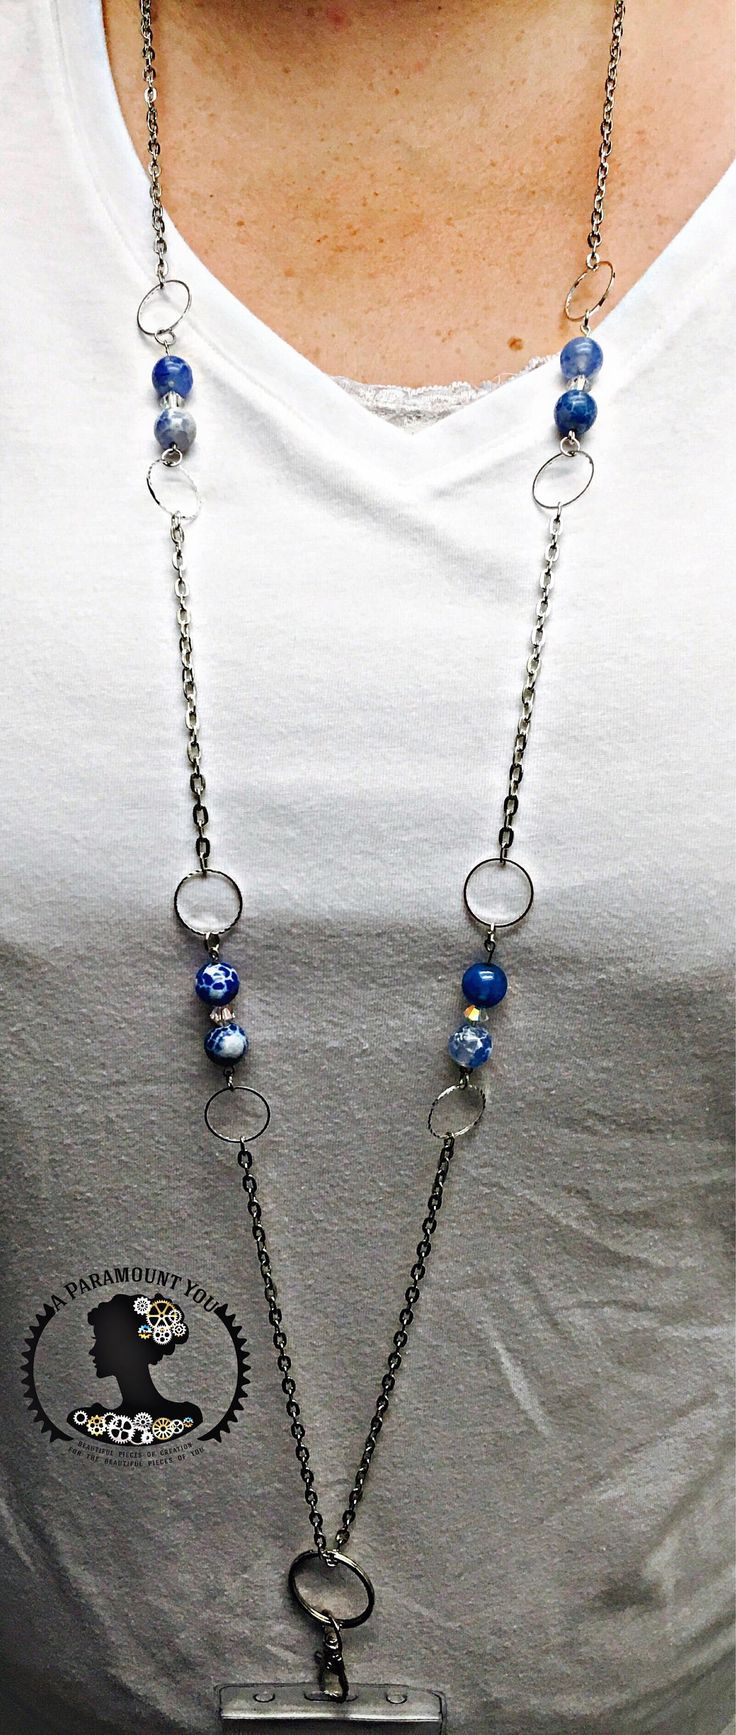 A personal favorite from my Etsy shop https://www.etsy.com/listing/541658593/glass-beaded-fashion-lanyard-necklace-id